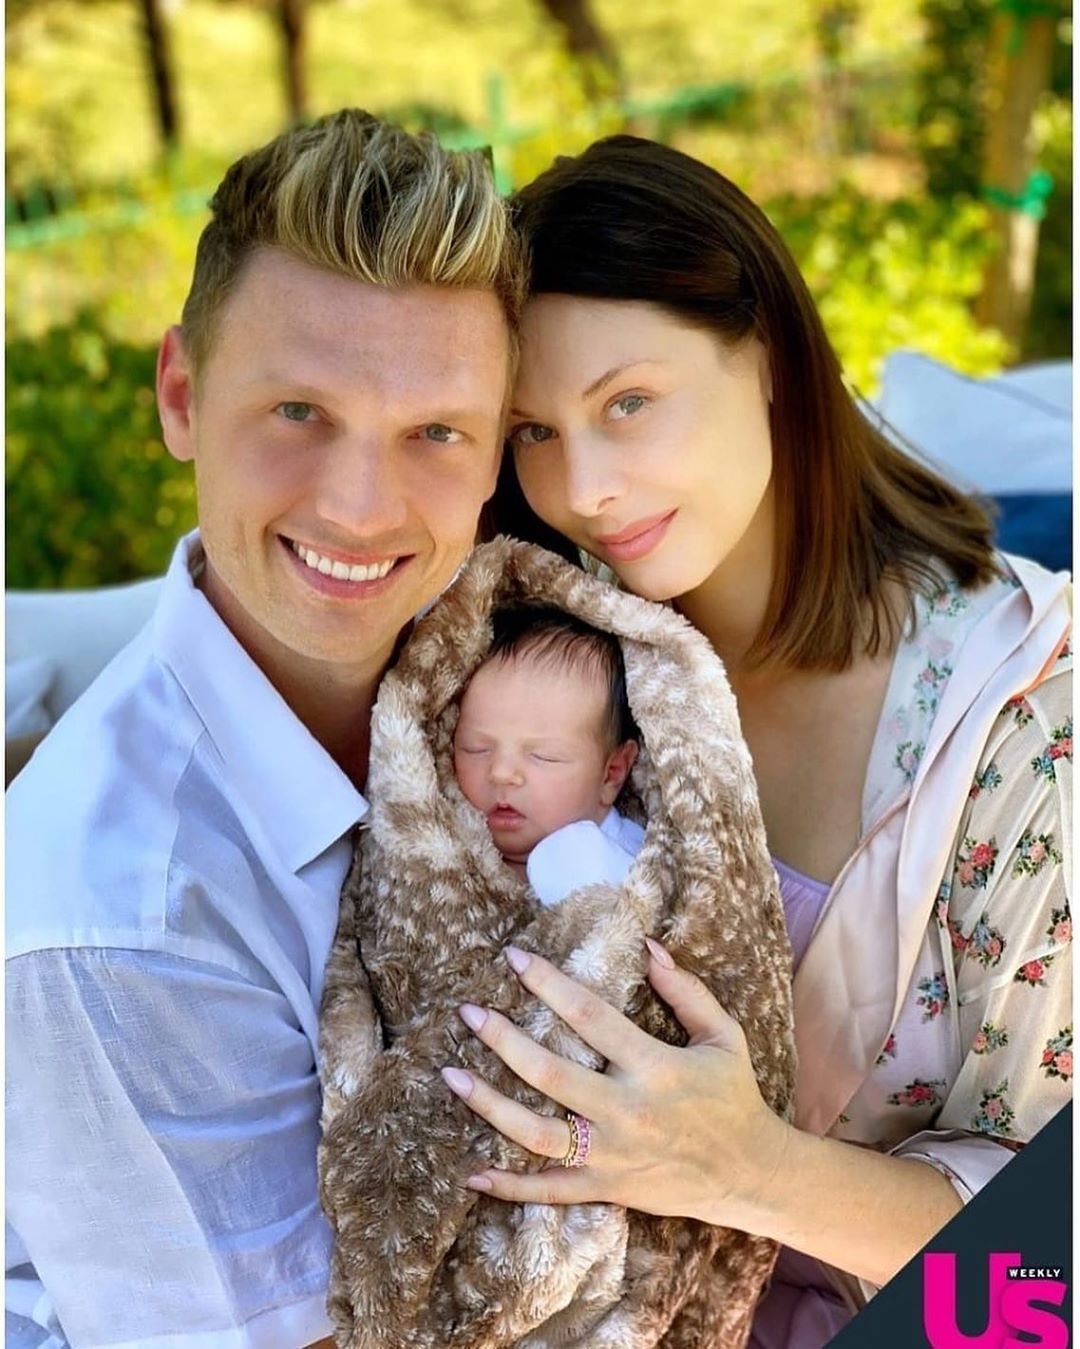 The Flea Market Boys Bella On Instagram New Welcome Babygirl I Wish You Both The Best Love Seeing You Ha Brian Littrell Backstreet Boys Nick Carter